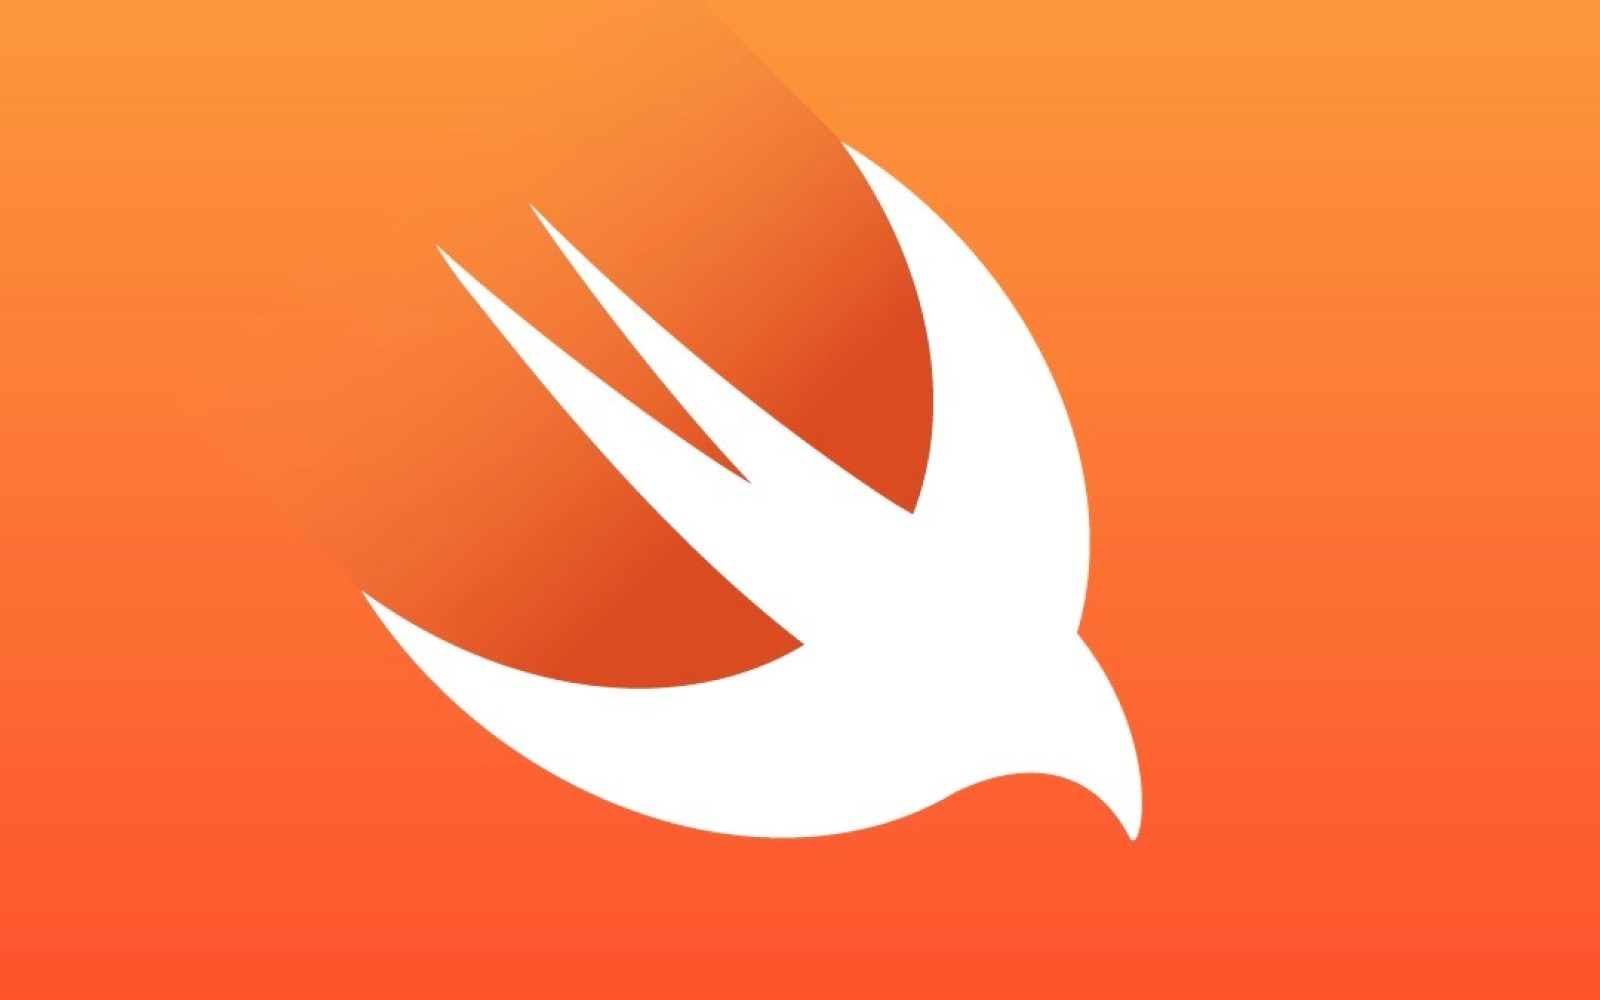 Swift is quickly rising in popularity as a developer language … but how much is Apple using Swift?